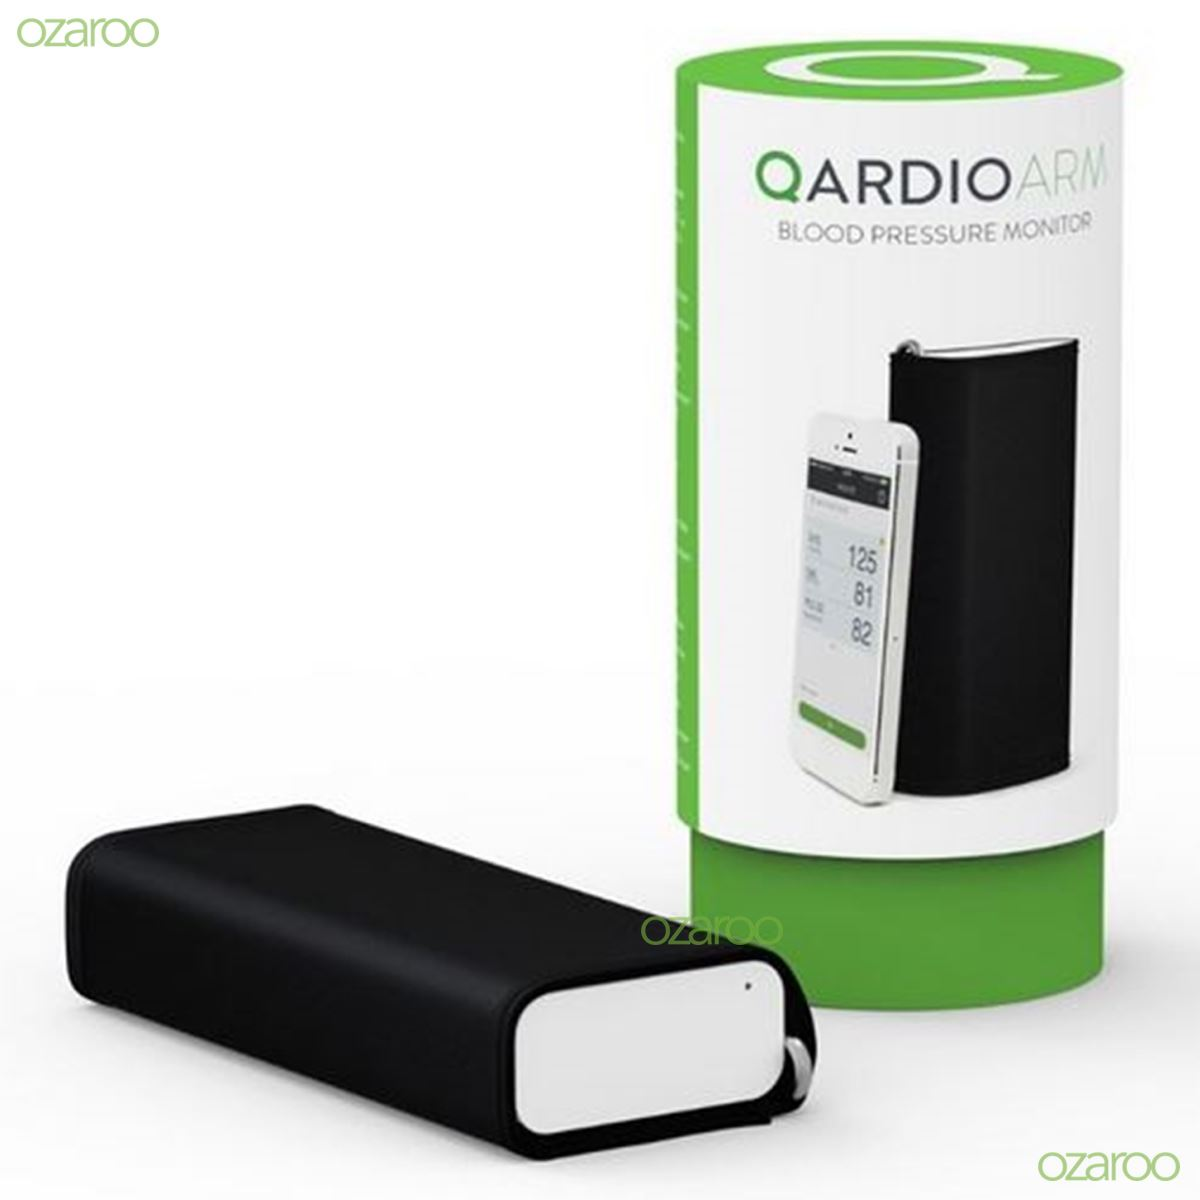 iphone blood pressure monitor qardio arm wireless modern pressure monitor for 7797